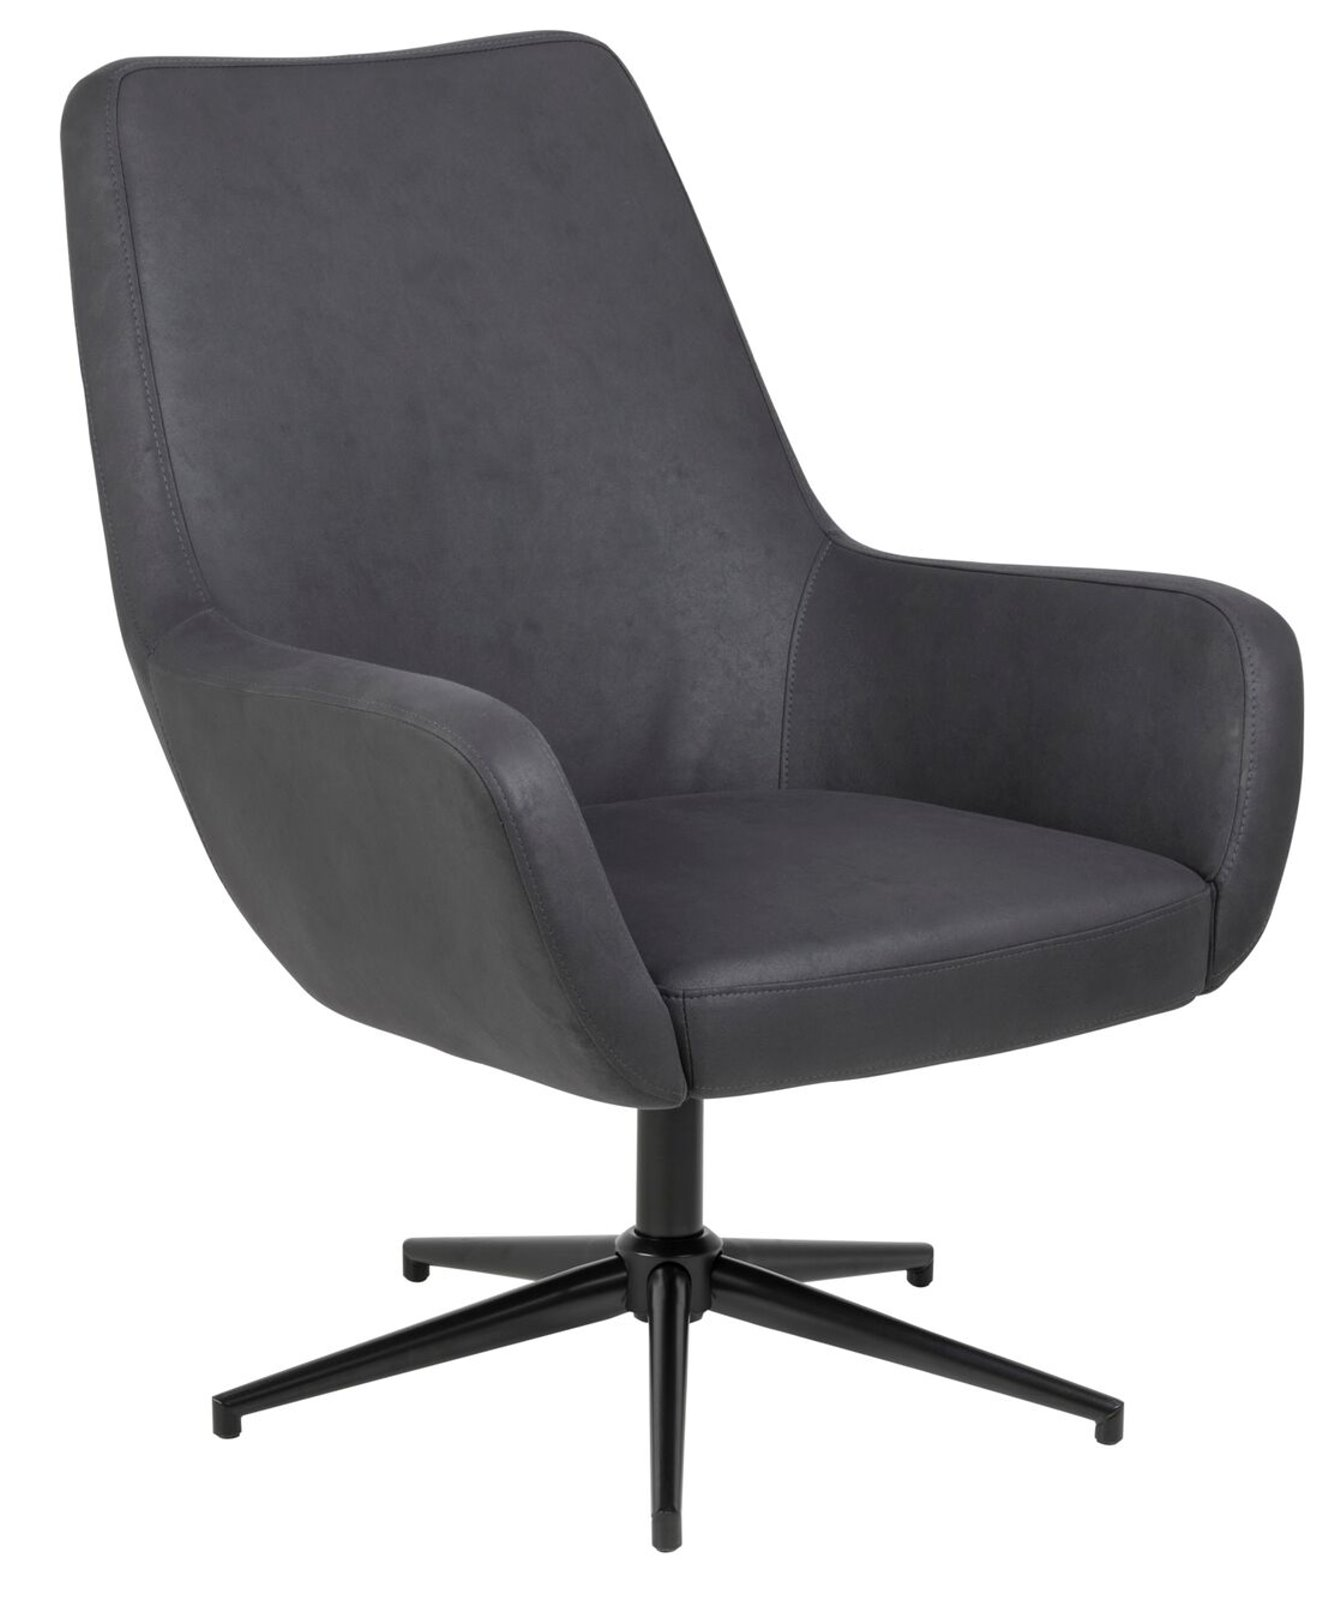 Clubsessel Kaufen Pkline Sessel Riga In Schwarz Relaxsessel Loungesessel Clubsessel